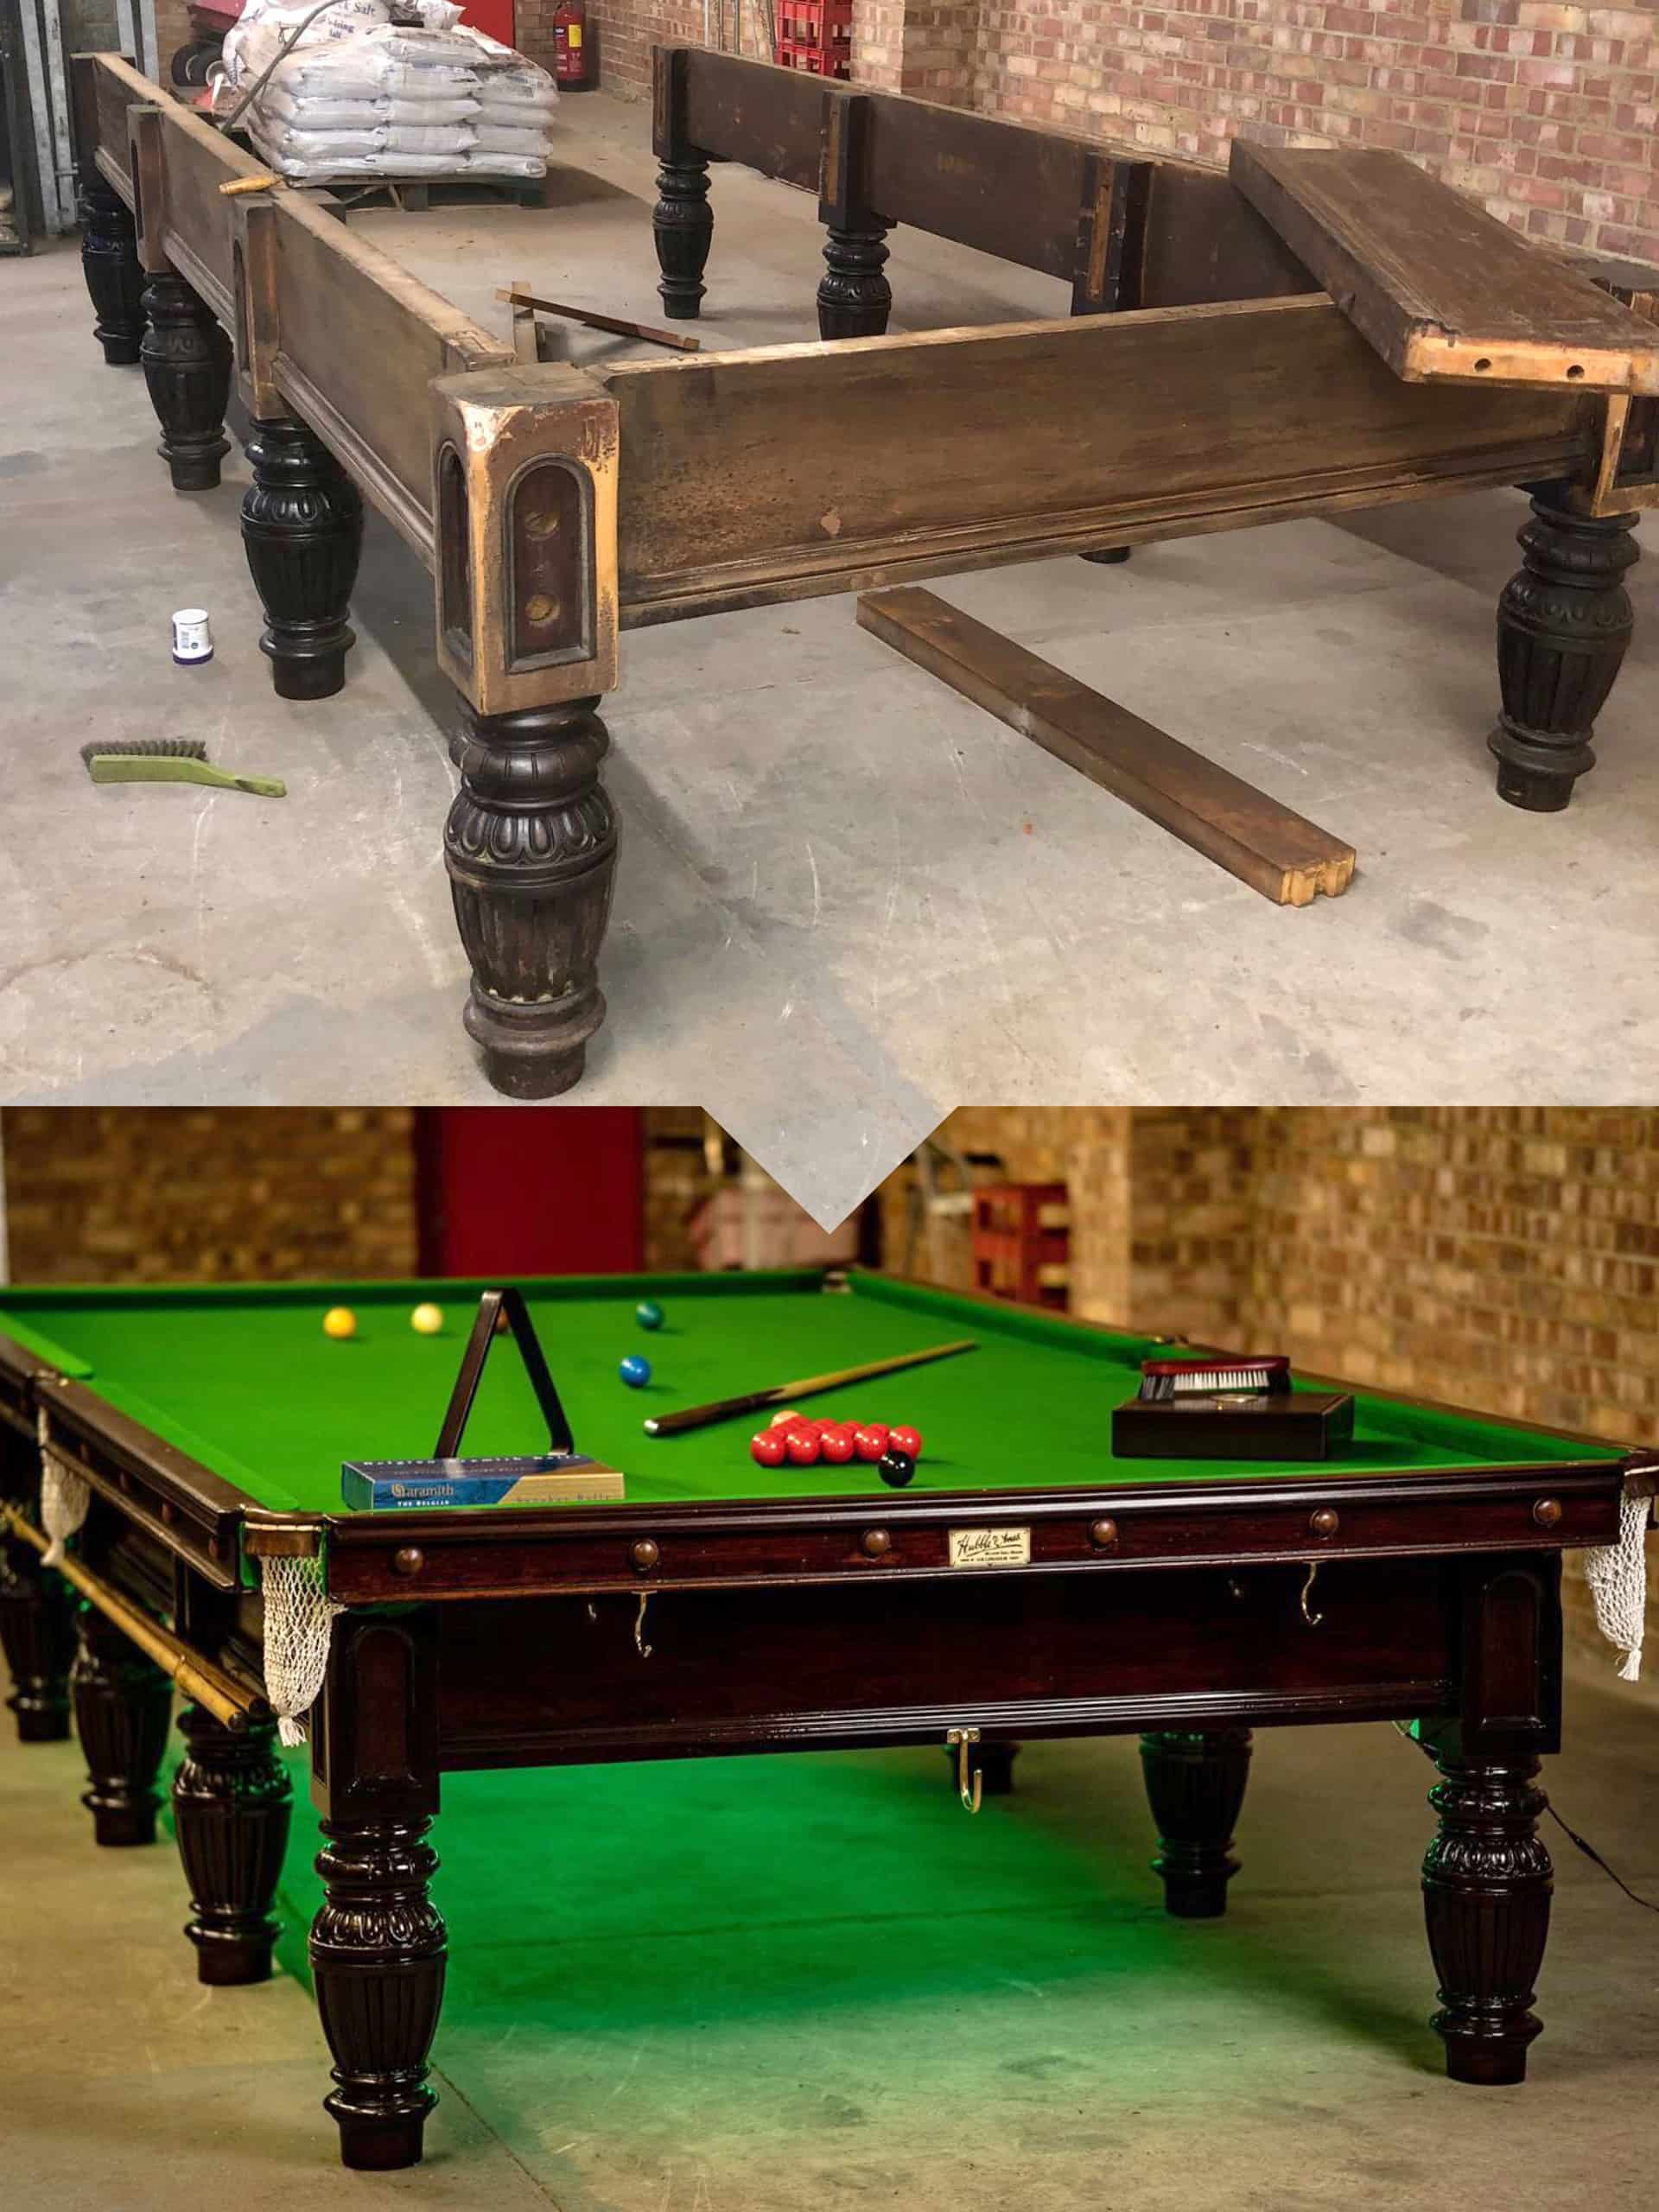 Refurbished snooker table before and after